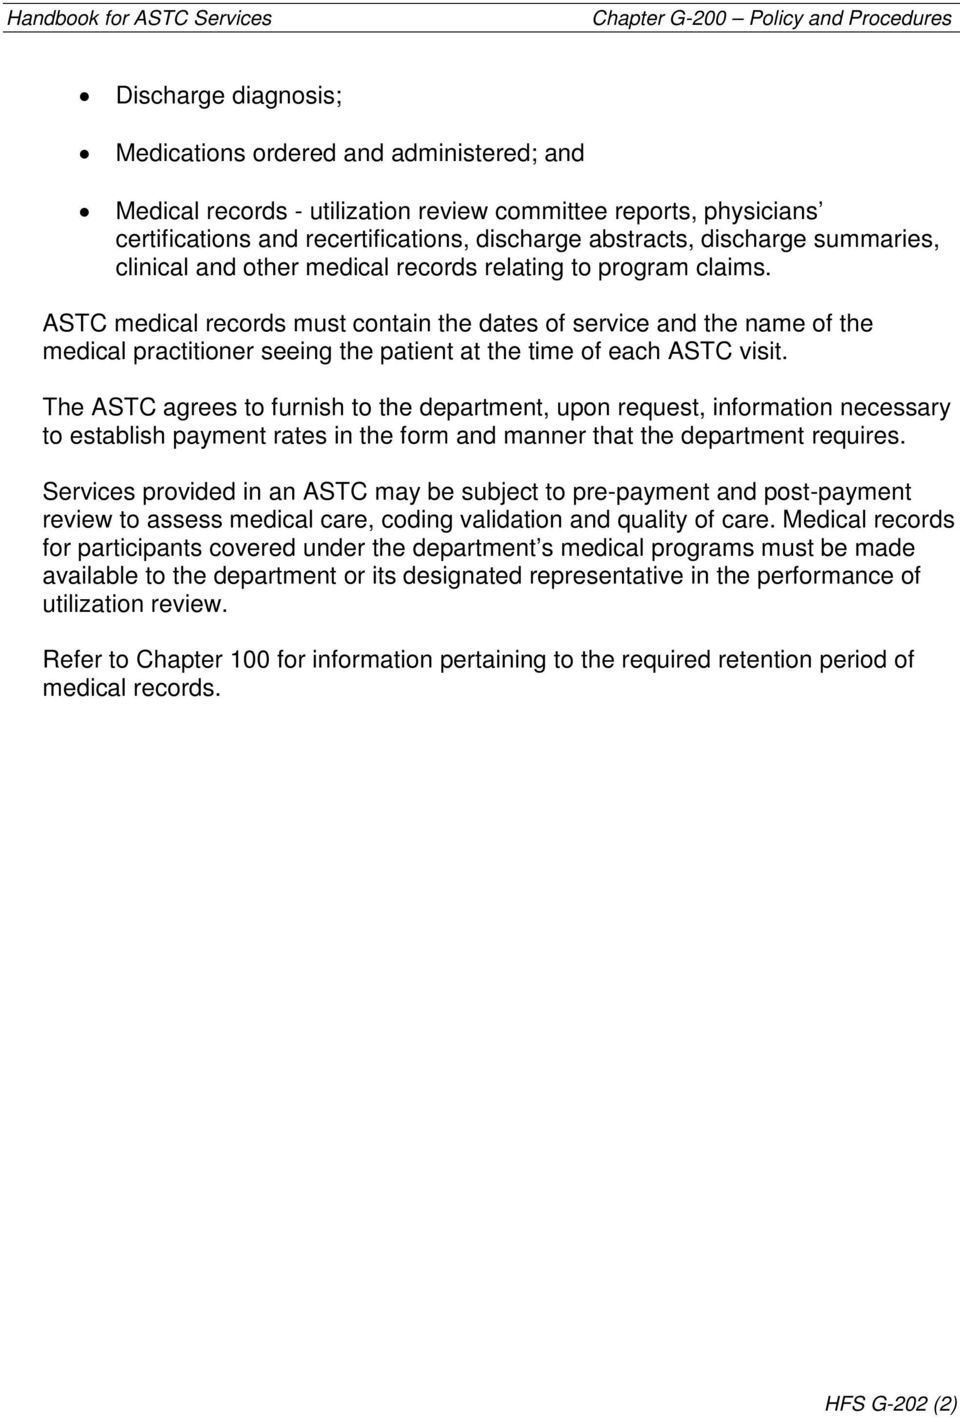 ASTC medical records must contain the dates of service and the name of the medical practitioner seeing the patient at the time of each ASTC visit.